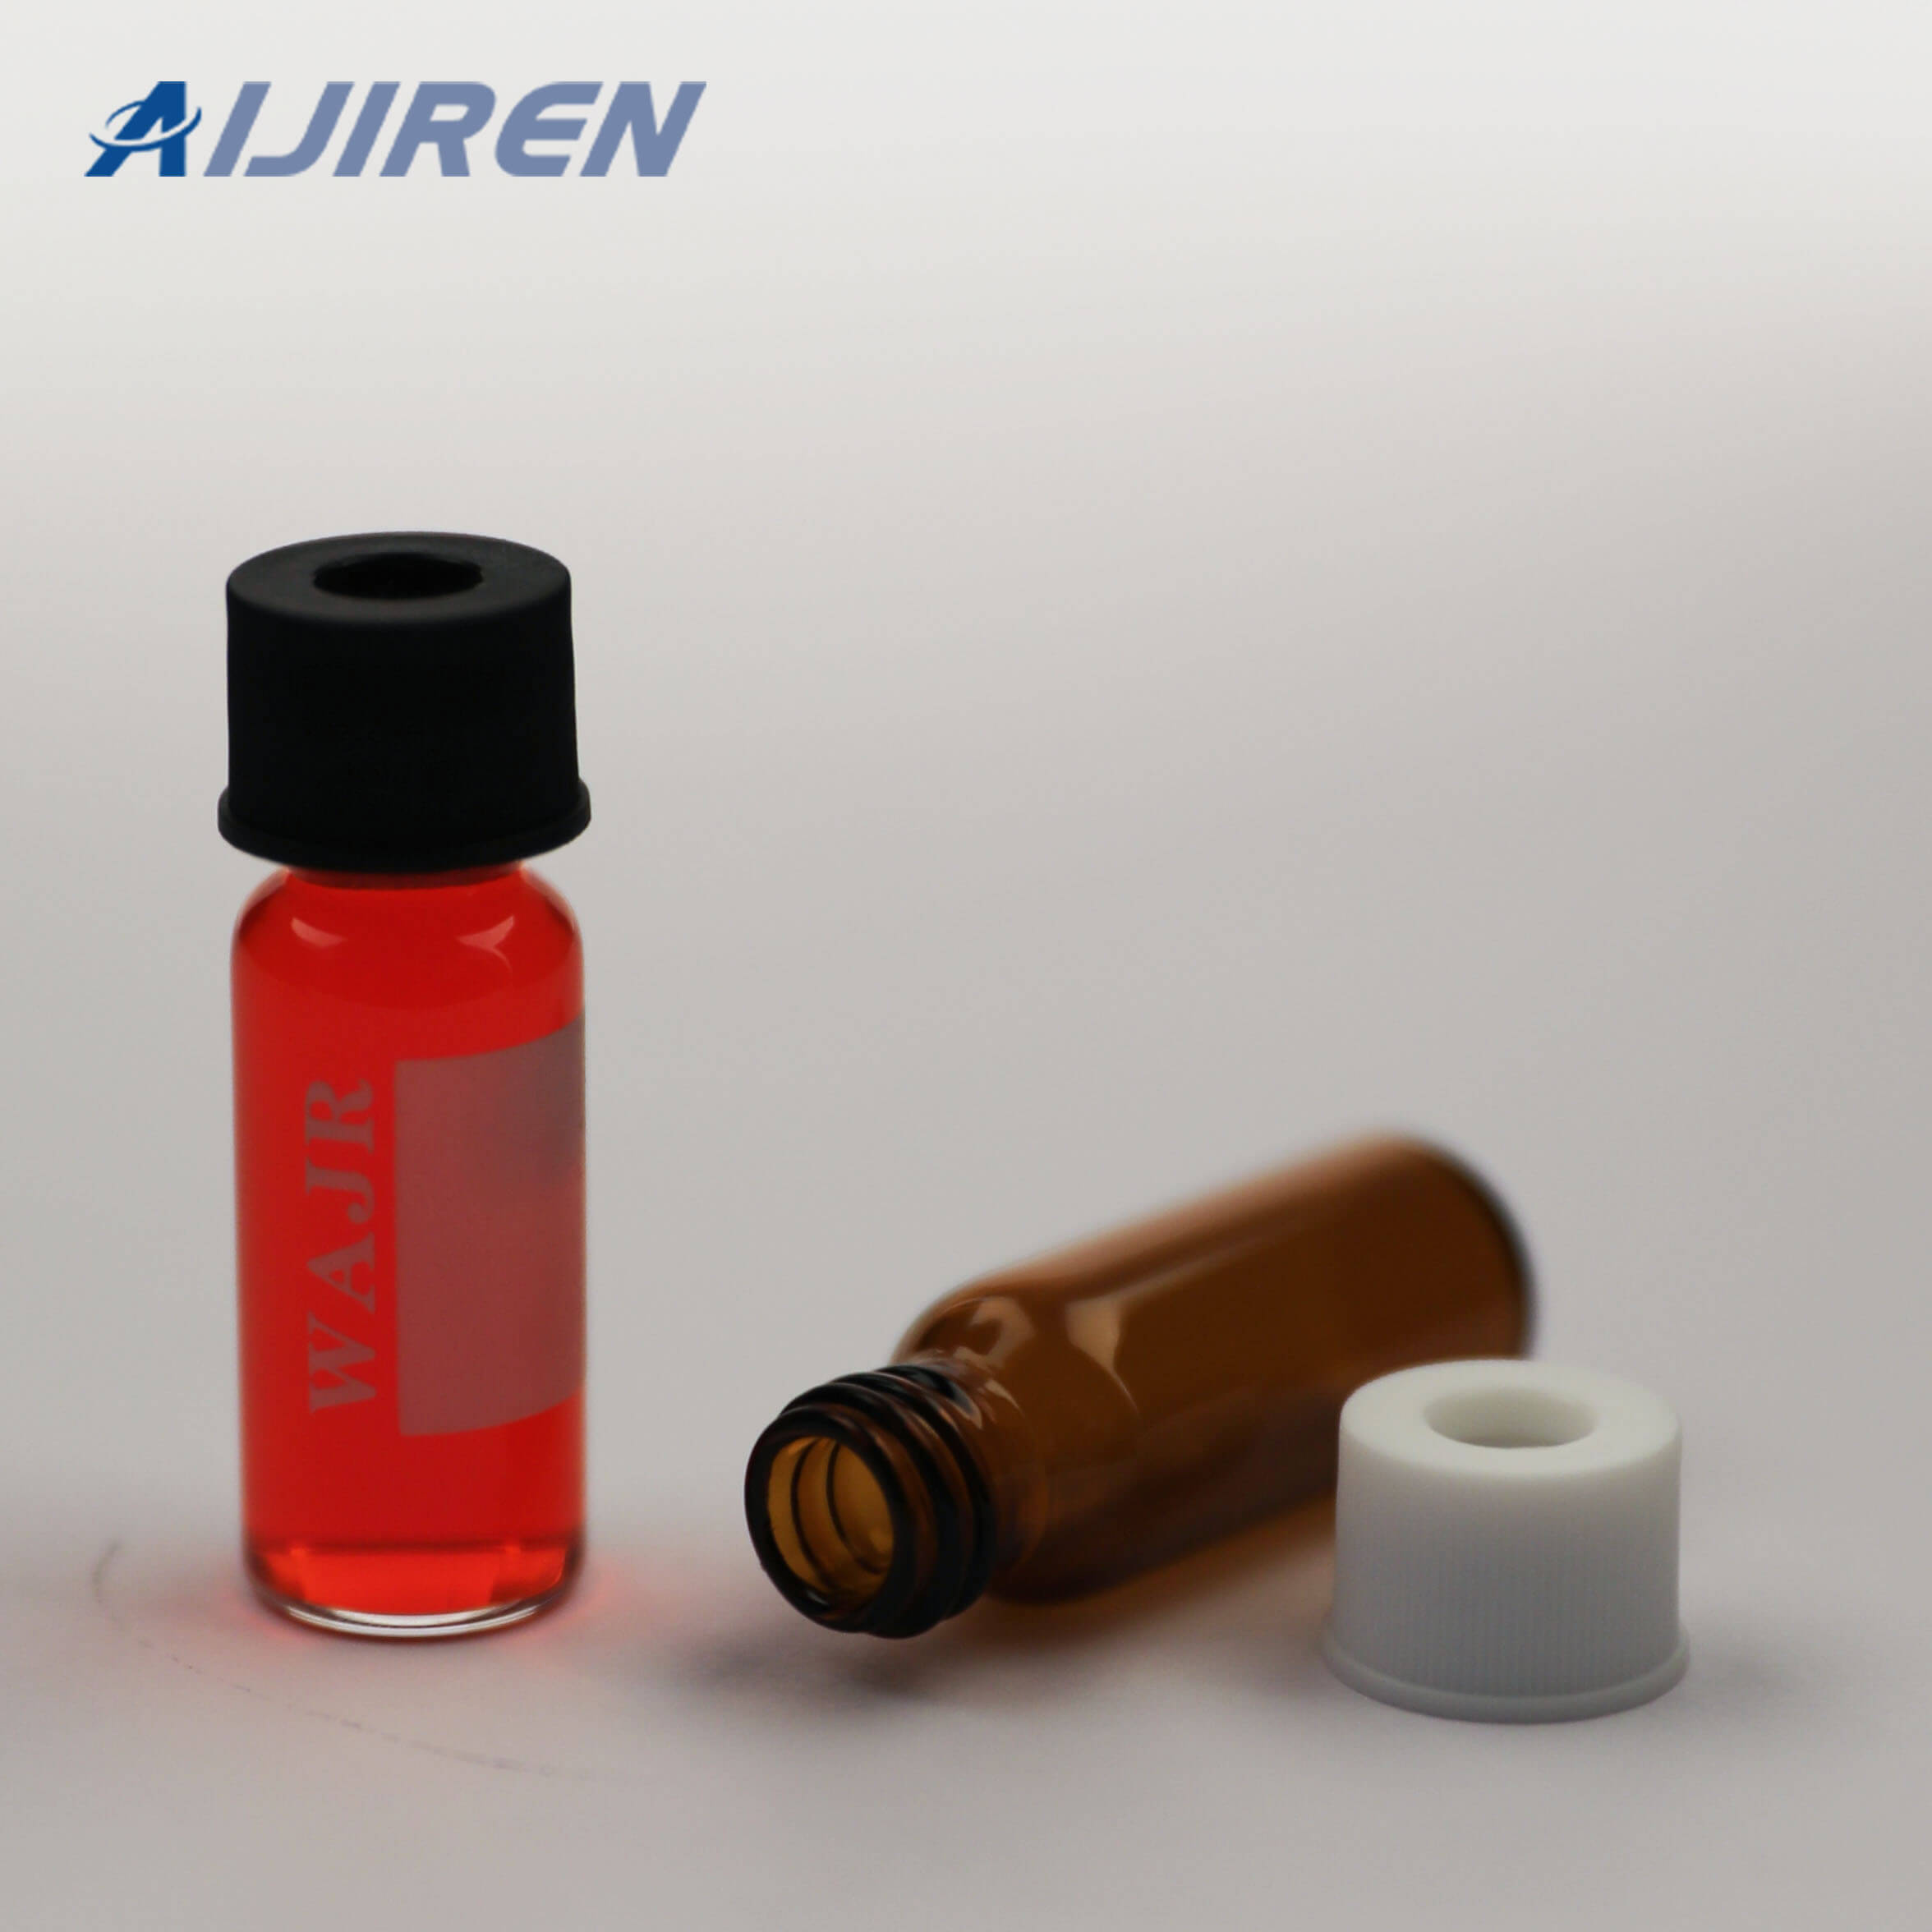 8mm Screw Neck HPLC Vial for THERMO FISHER